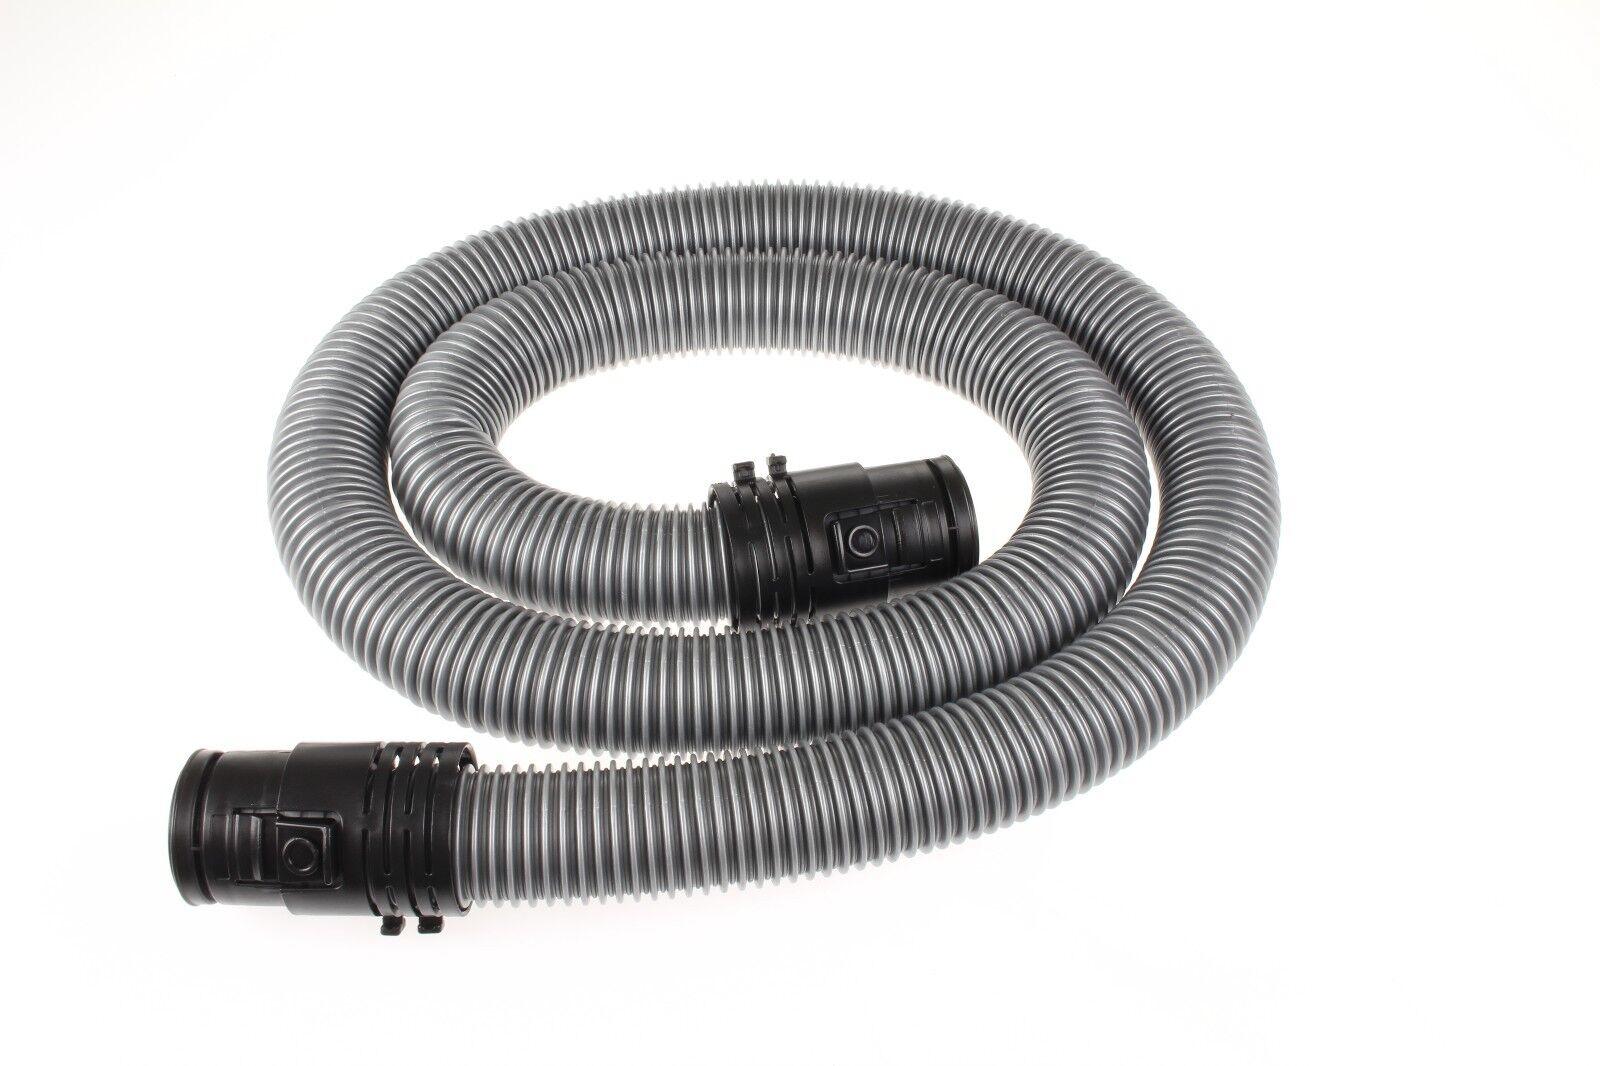 Miele S2131 S2181 Vacuum Cleaner Hose Suction Pipe1.7m 38mm Hose Grey